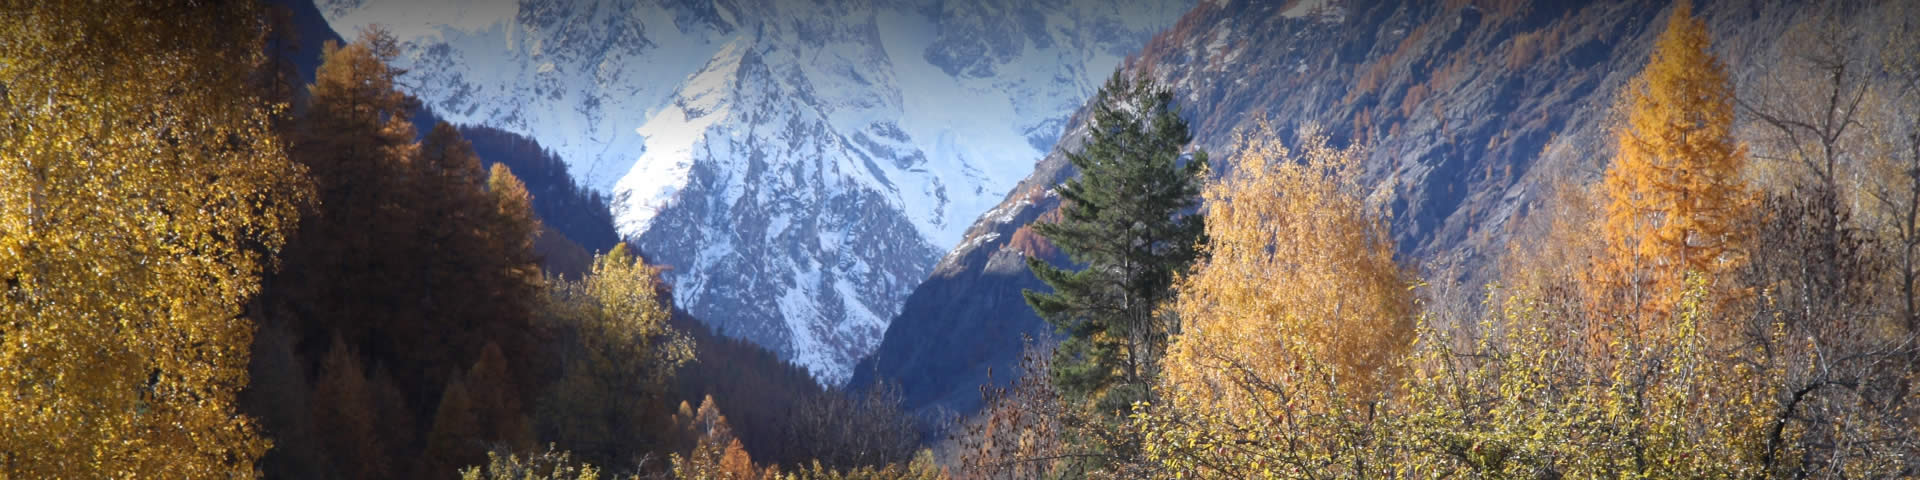 Autumn holidays in the French Alps - get the best accommodation at Alpbase.com